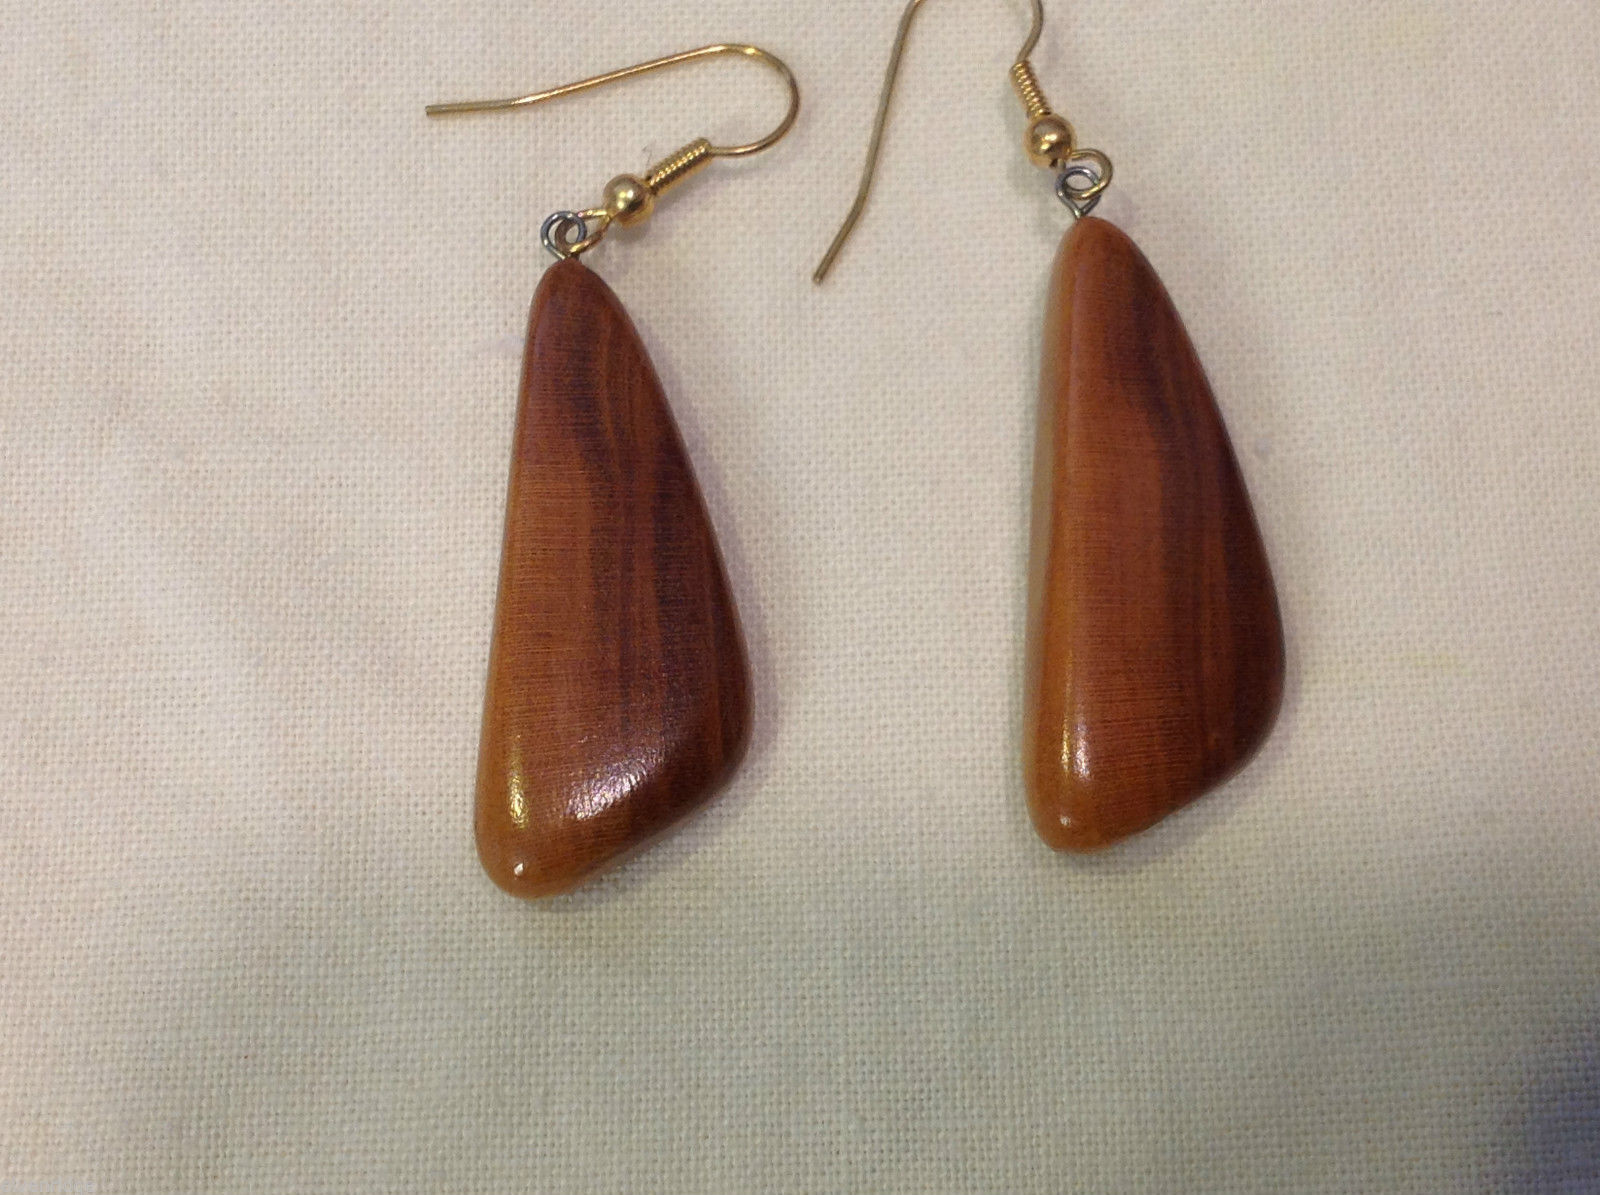 New w tags natural blonde and medium wood grained earrings Ukraine